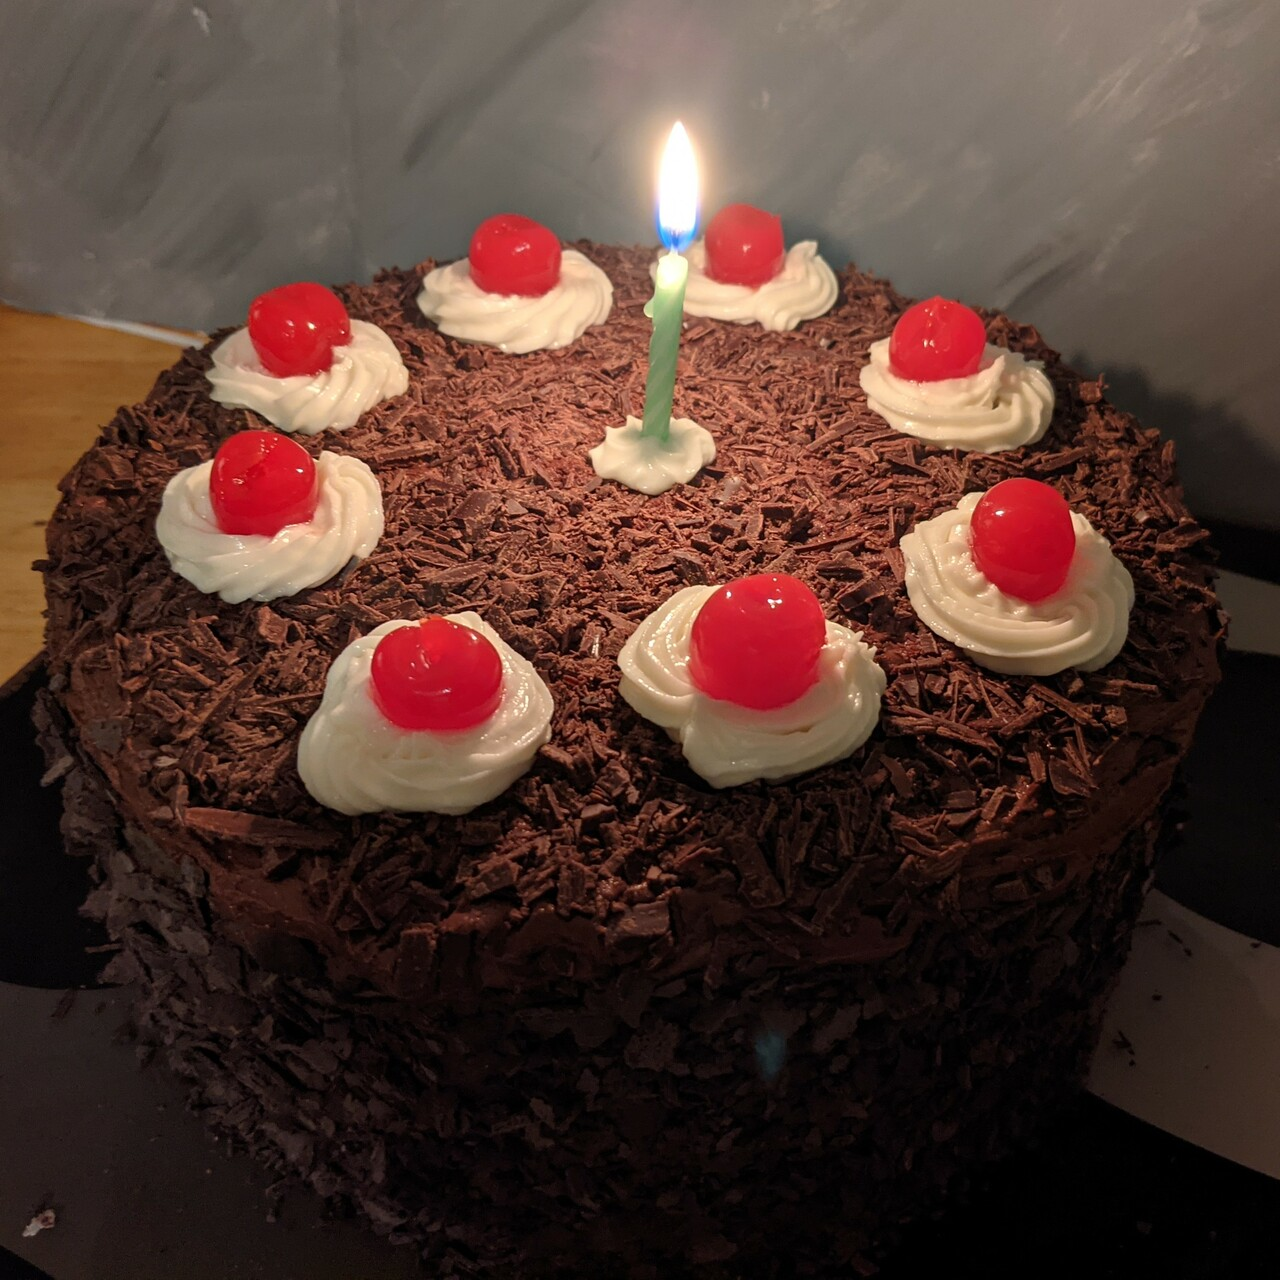 A chocolate cake with shavings on the sides and eight cherries spaced around the top, each embedded in whipped cream, with a single candle in the center.